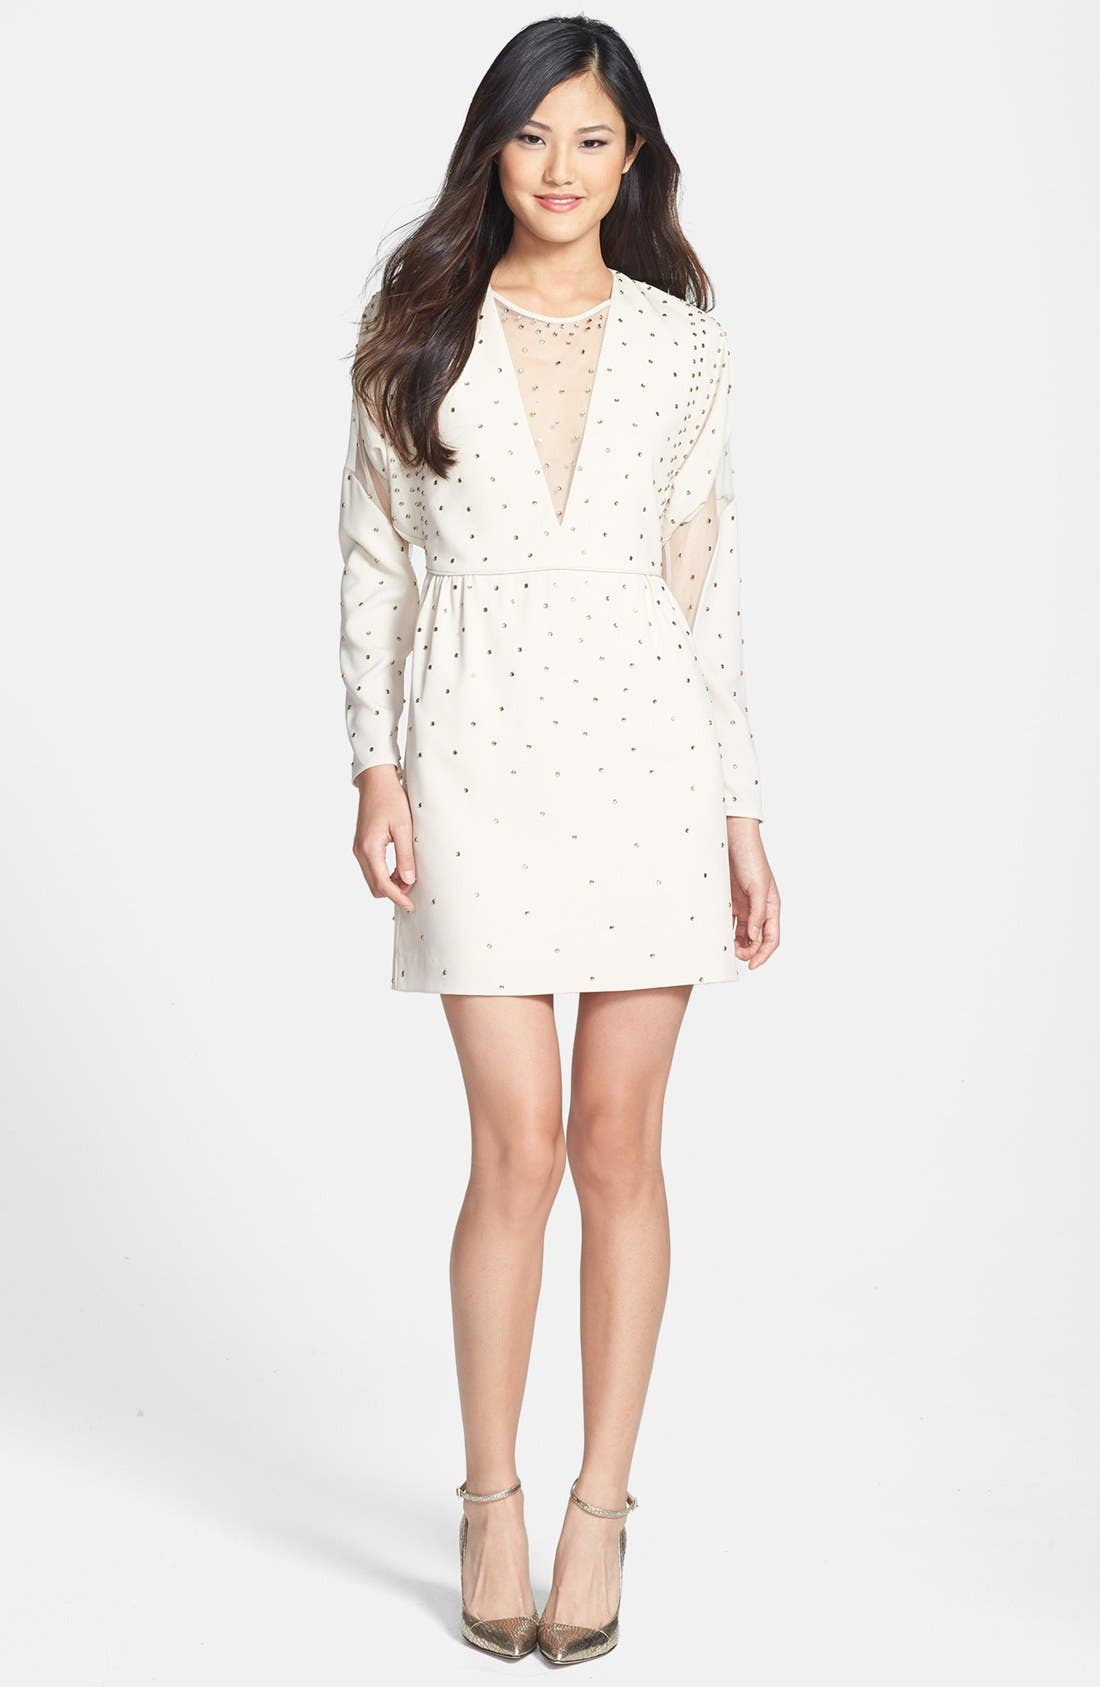 Main Image - BCBGMAXAZRIA Illusion Cutout Embellished Dress